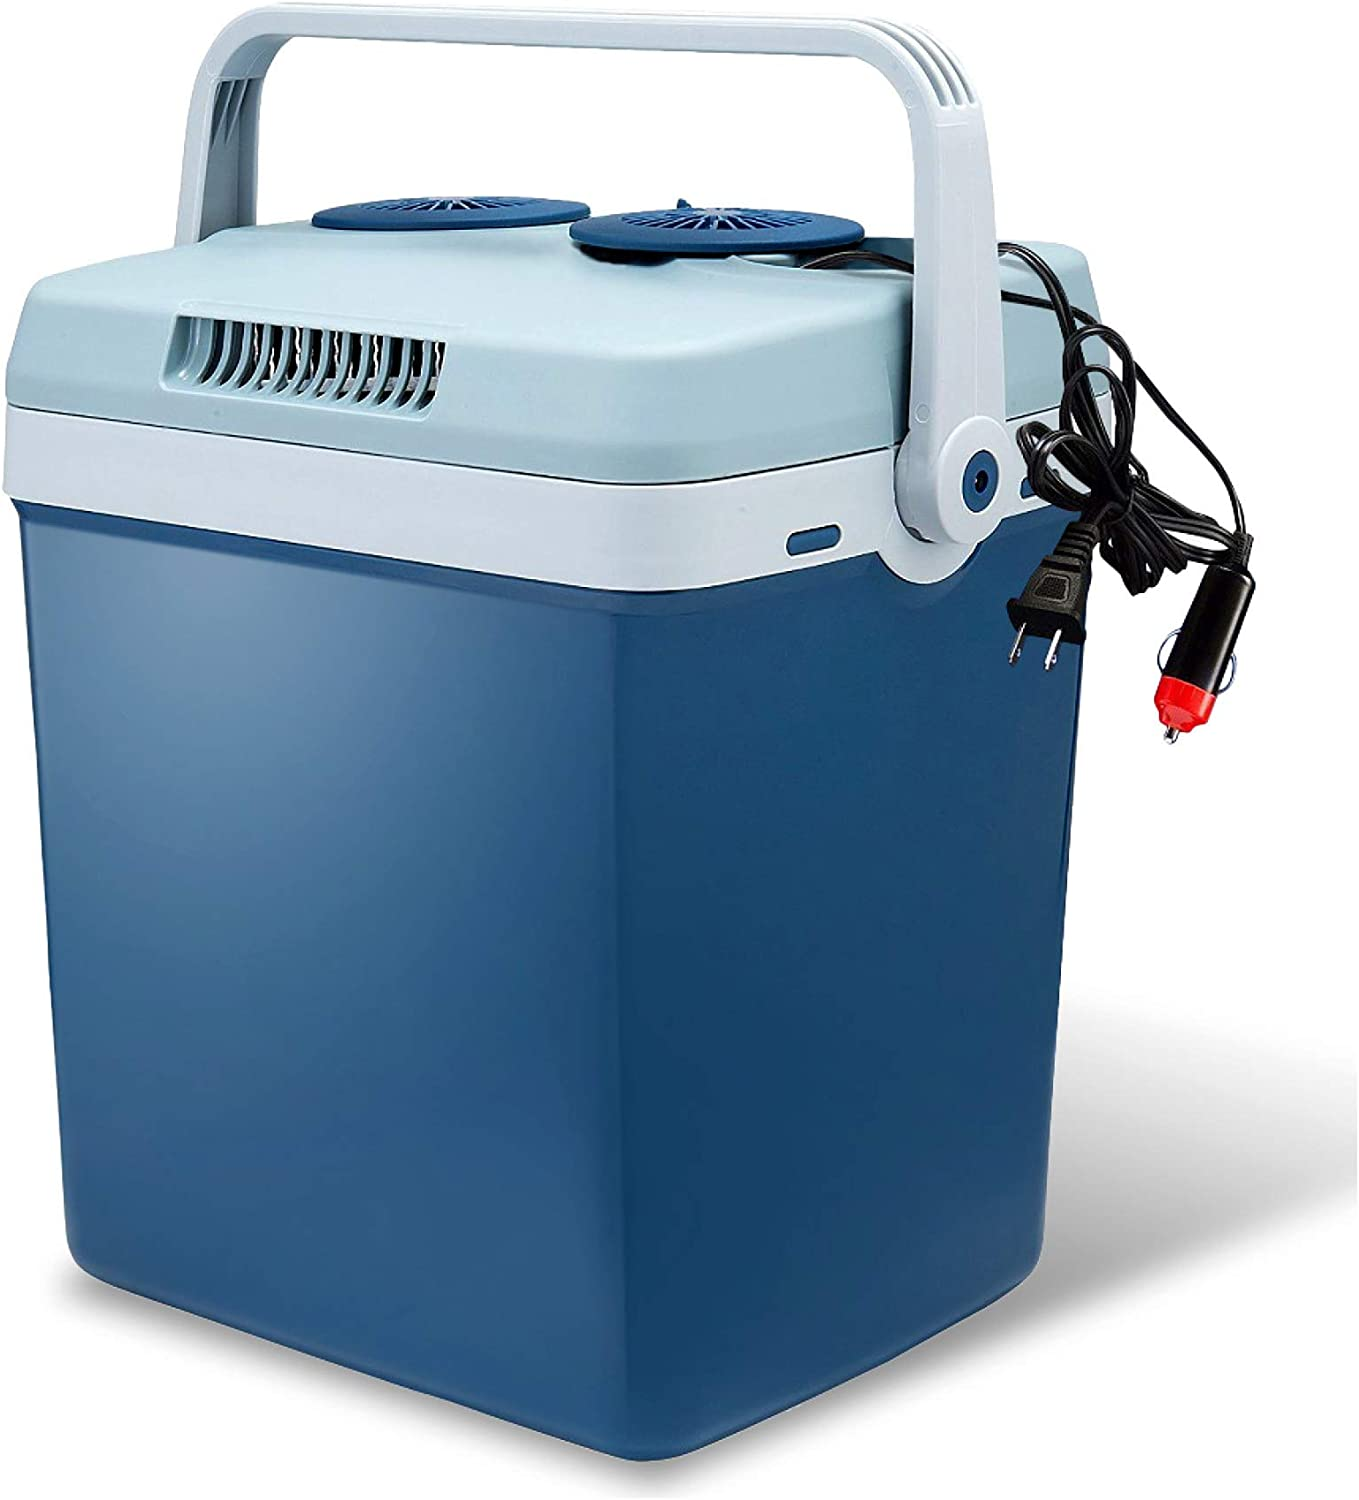 Lifestyle by Focus Electric Travel Cooler and Warmer for Car and Home - 27 Quart (25 Liter) Holds 30 Cans - Dual 110V AC House and 12V DC Vehicle Plugs